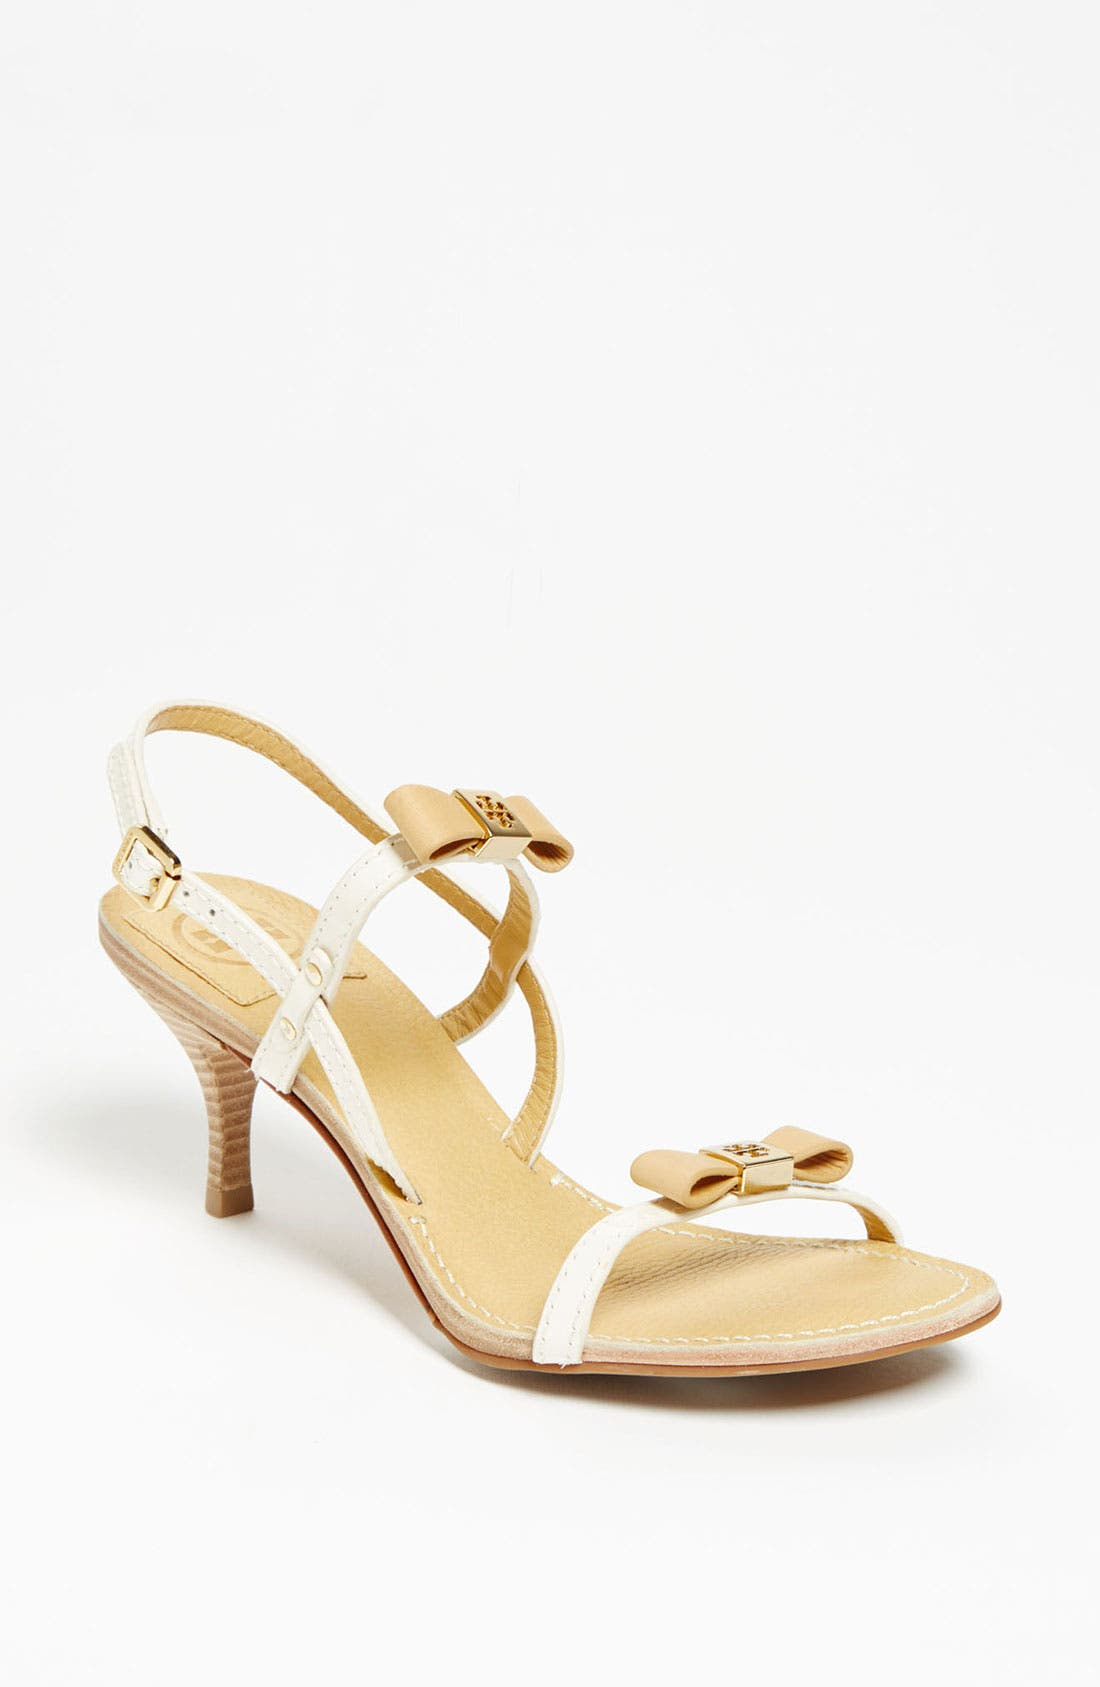 Alternate Image 1 Selected - Tory Burch 'Kailey' Sandal